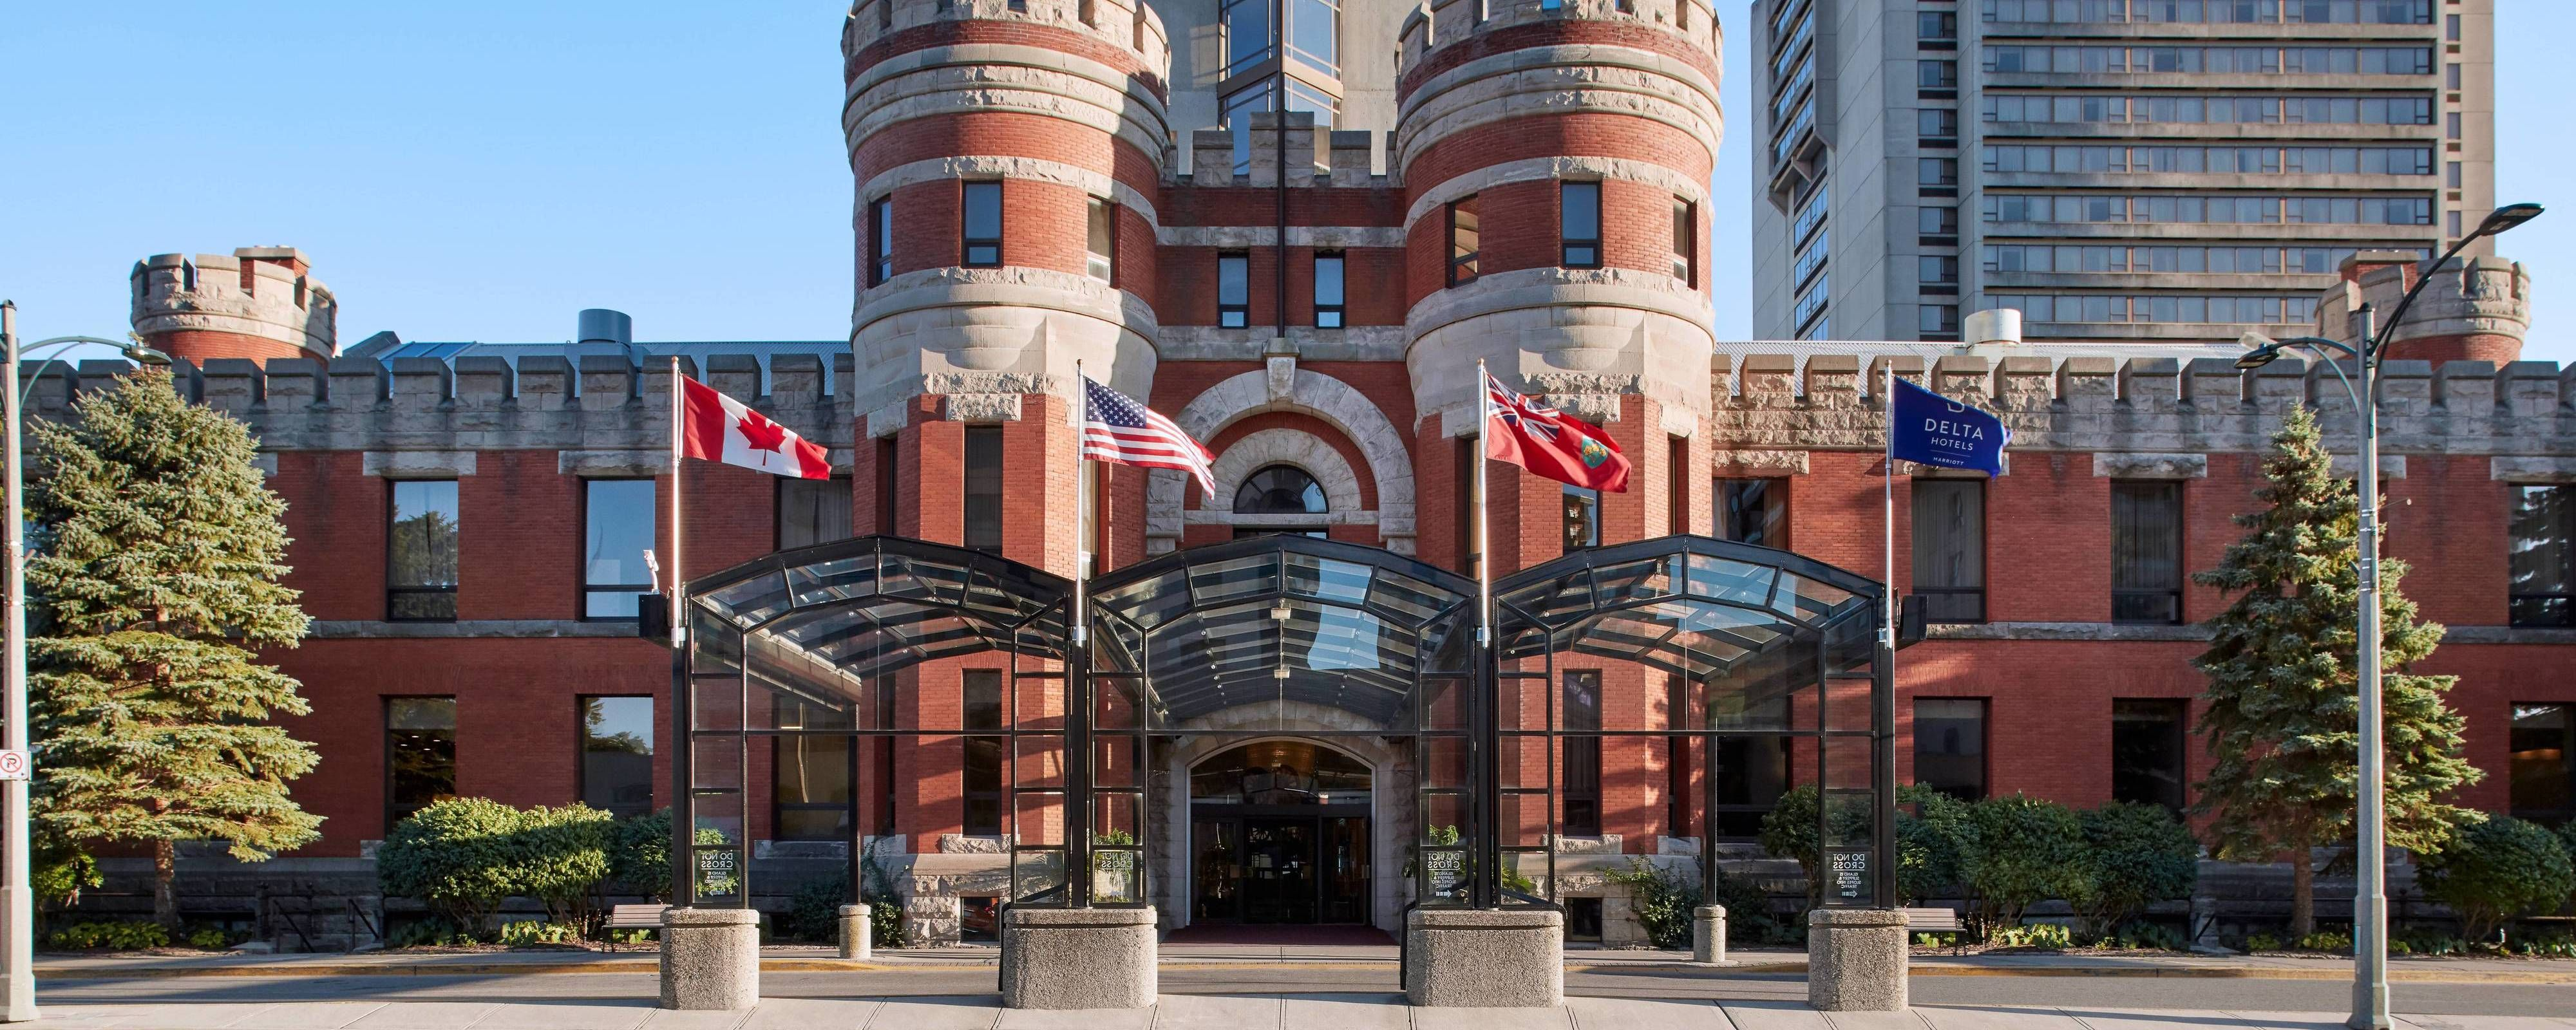 Experience Our Historically Designed Hotel In Downtown London Ontario You Ll Find An Indoor Pool Lounge And Fitness Cent London Hotels Hotel Marriott Hotels